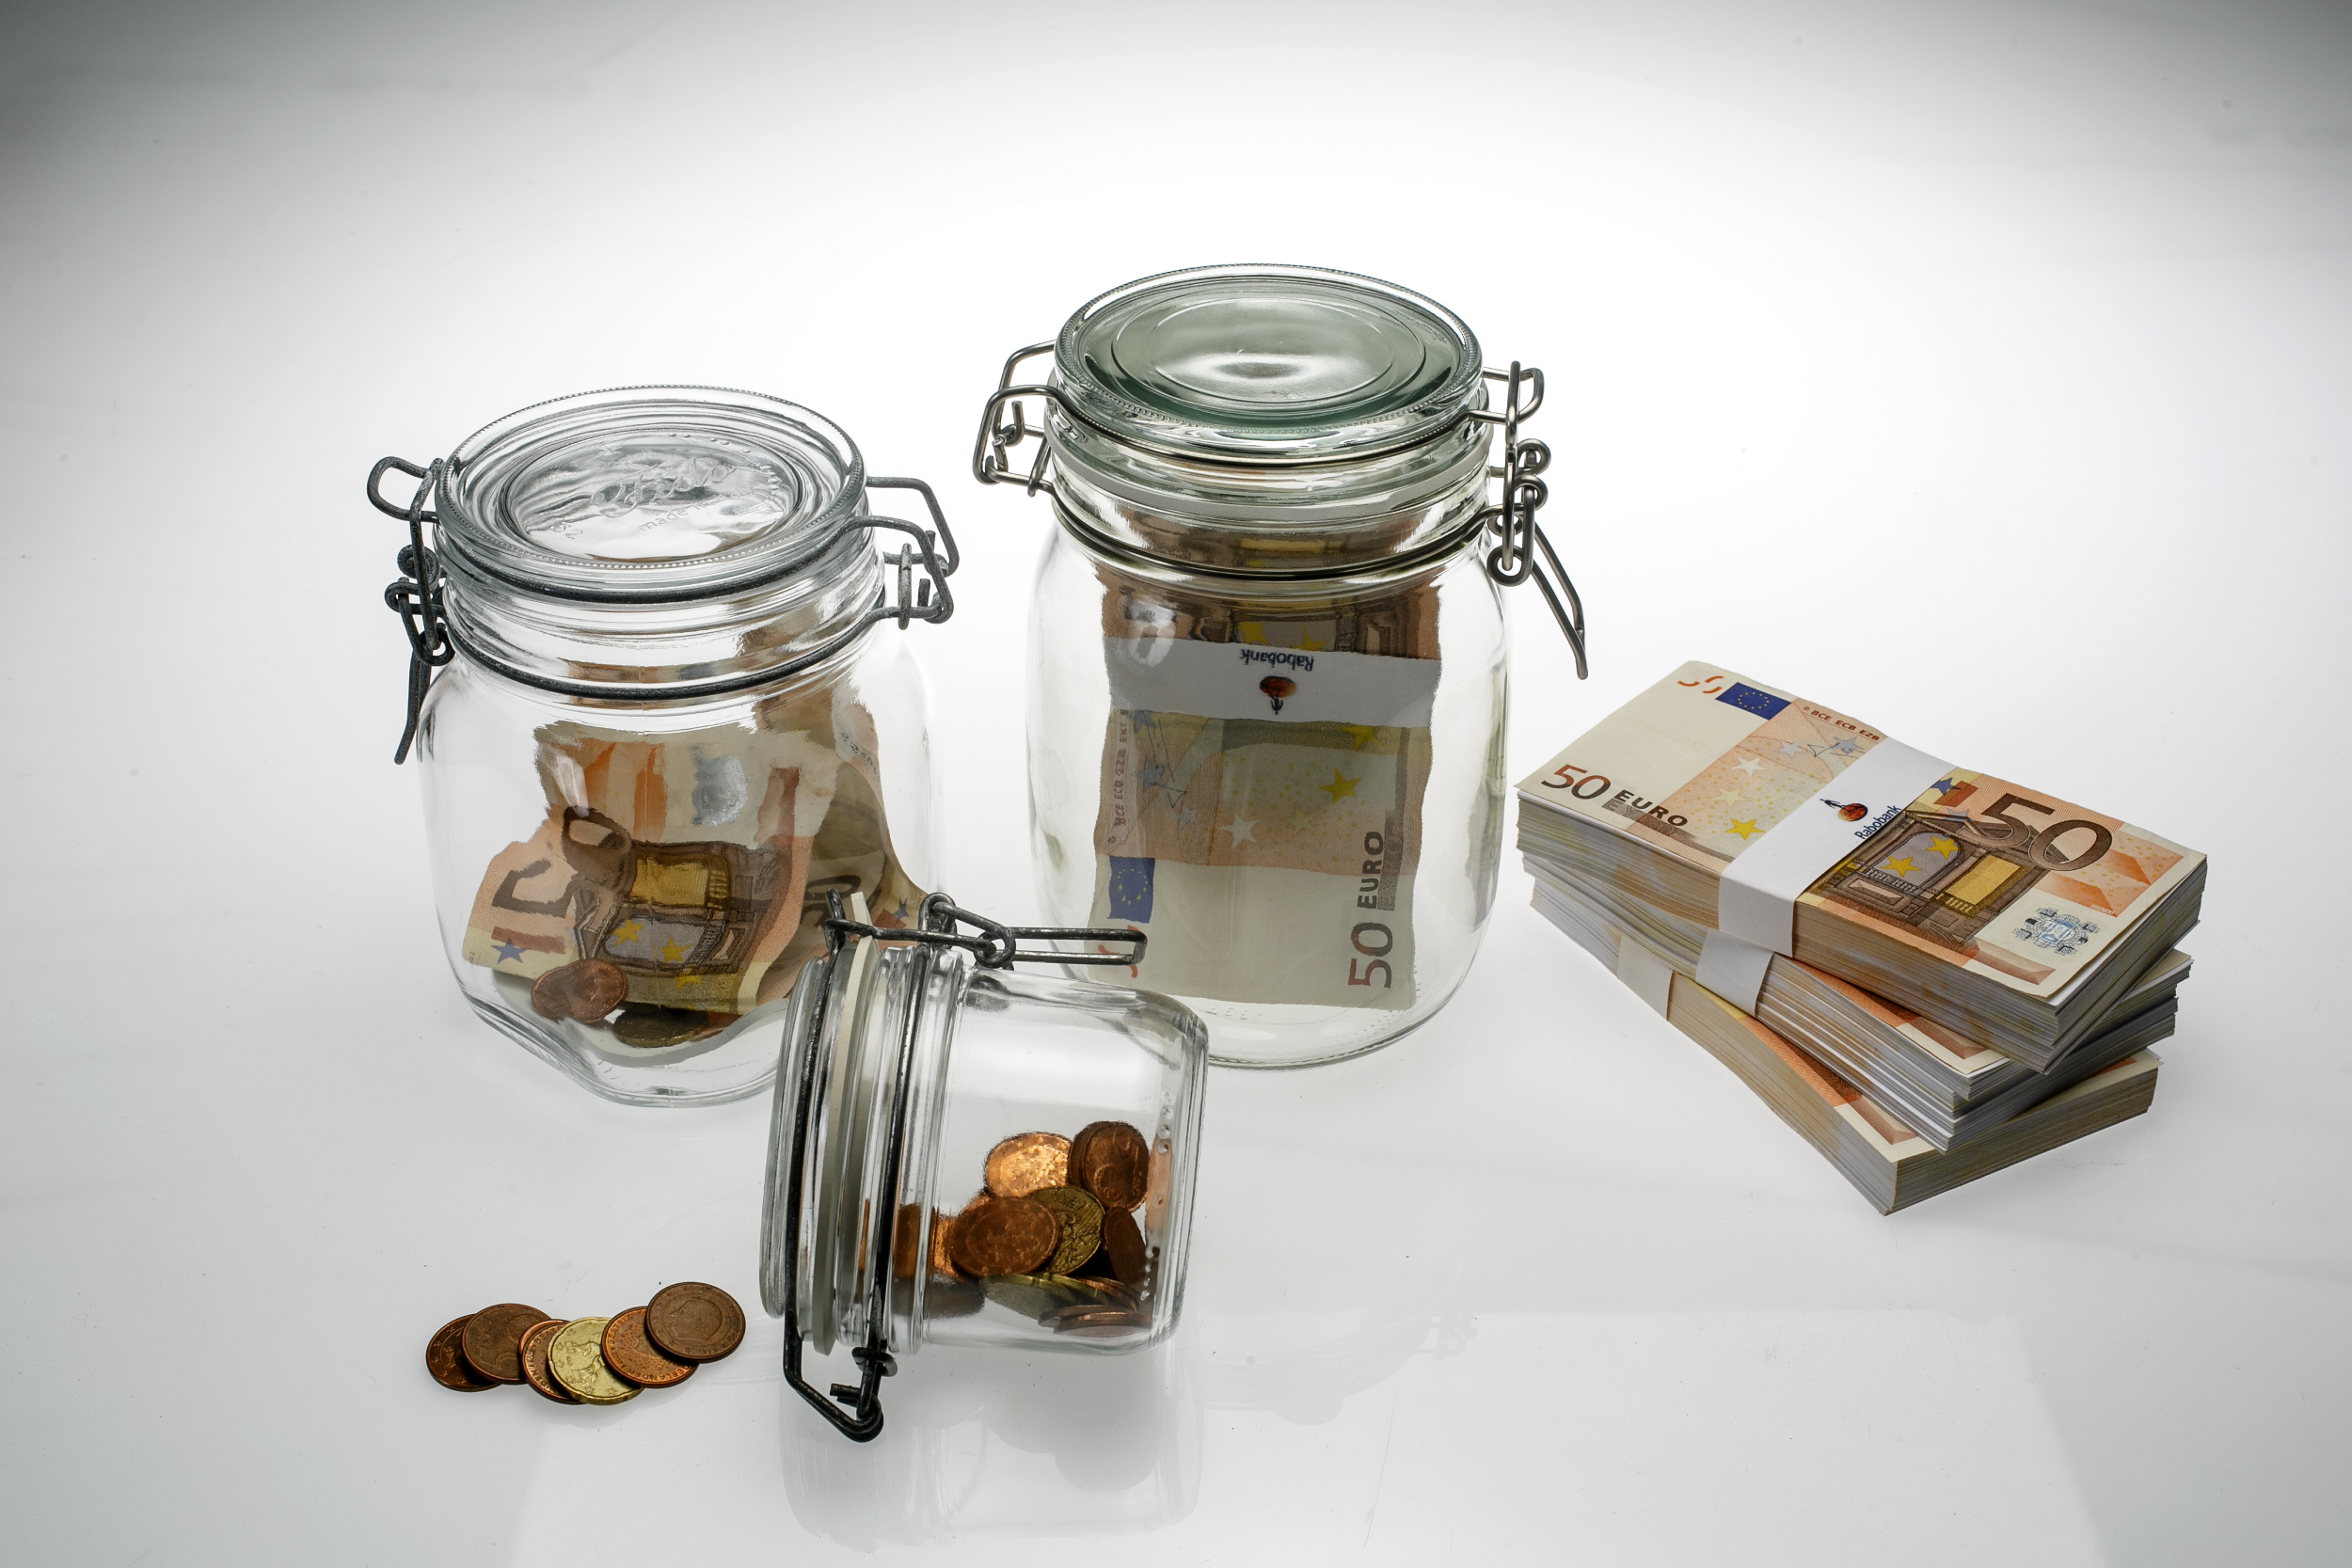 geld, money, bankbiljet, banknote, munt, coin, sparen, savings, briefgeld, papiergeld, bills, contant, cash, Rabobank